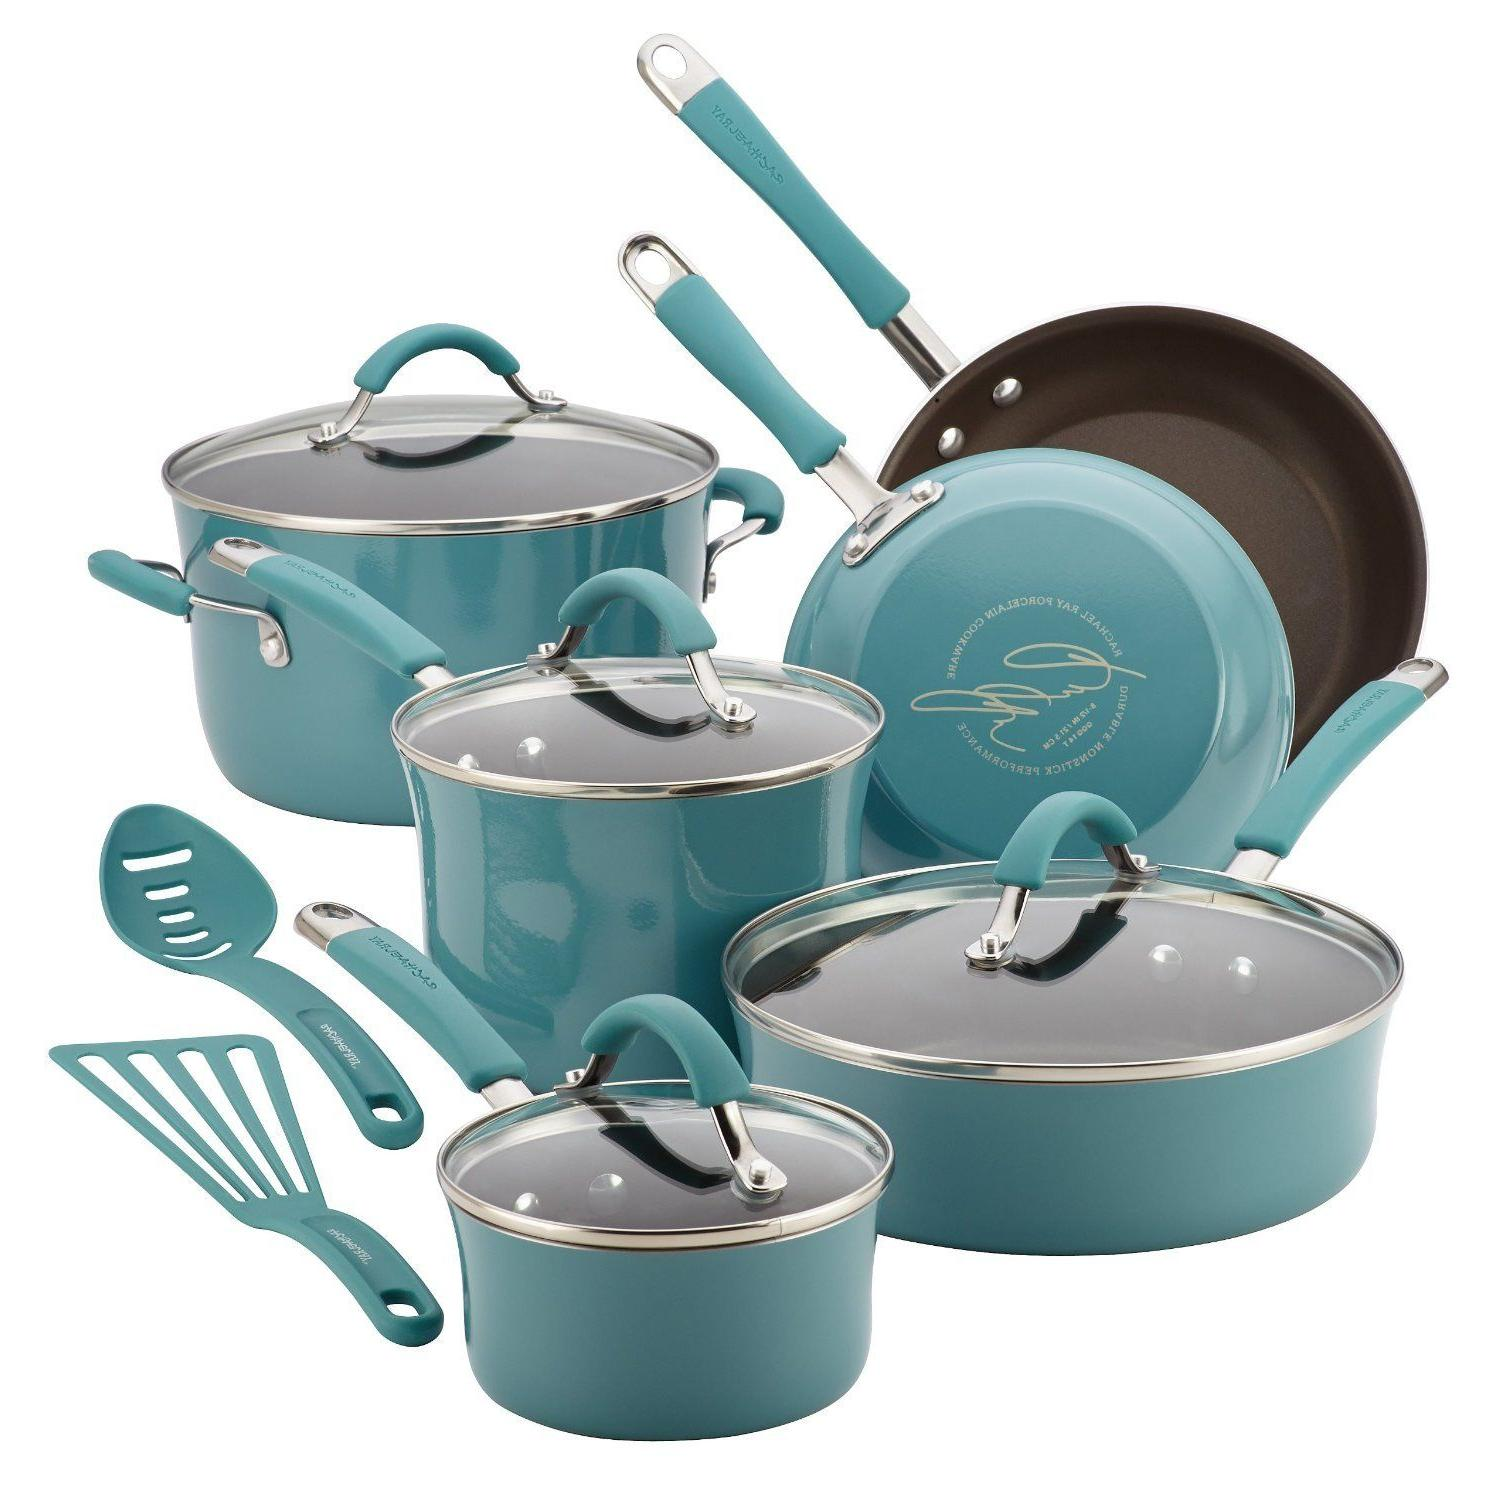 rachel cookware set nonstick blue